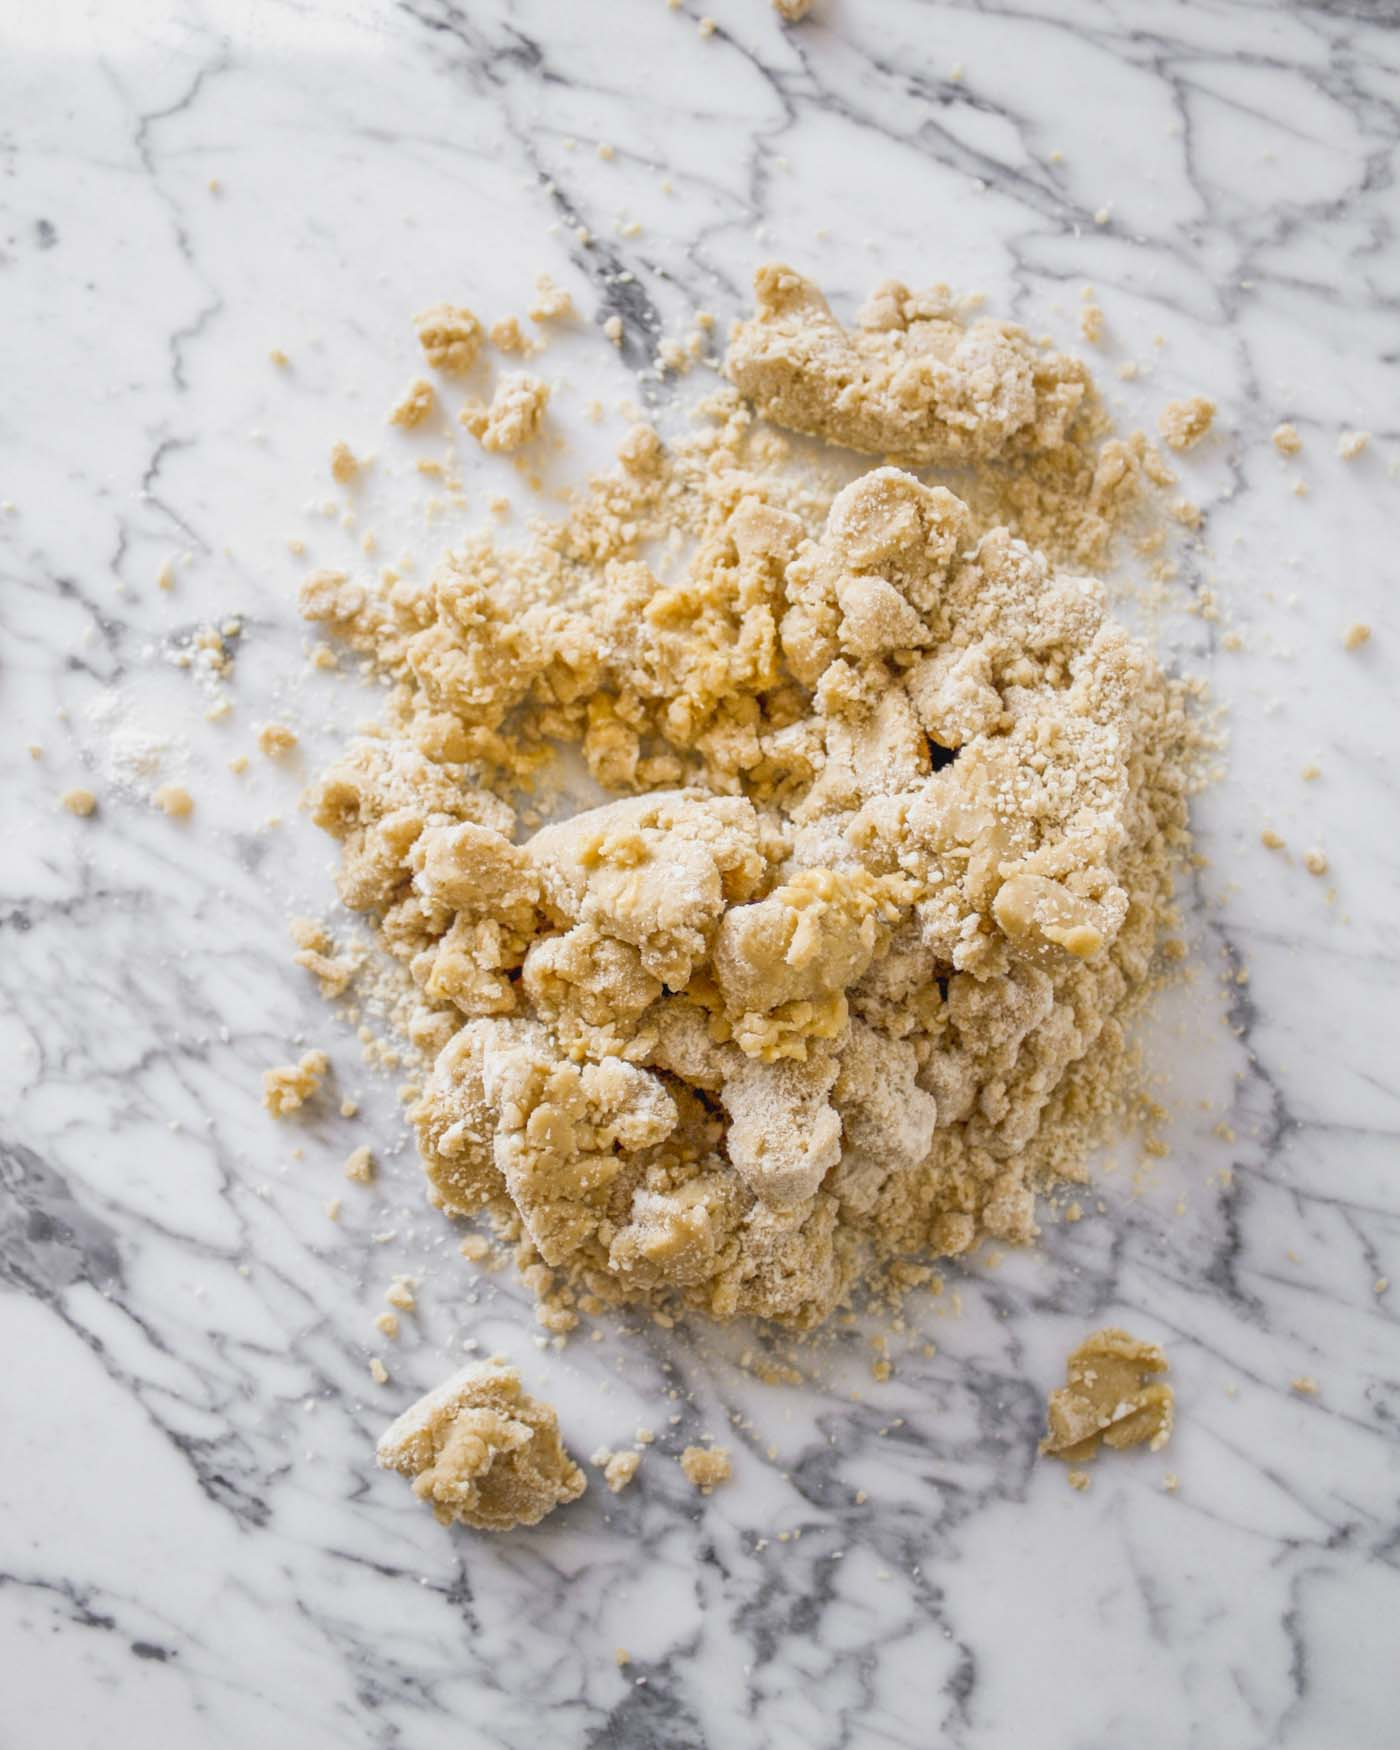 Crumbly tart dough scattered on a marble surface.